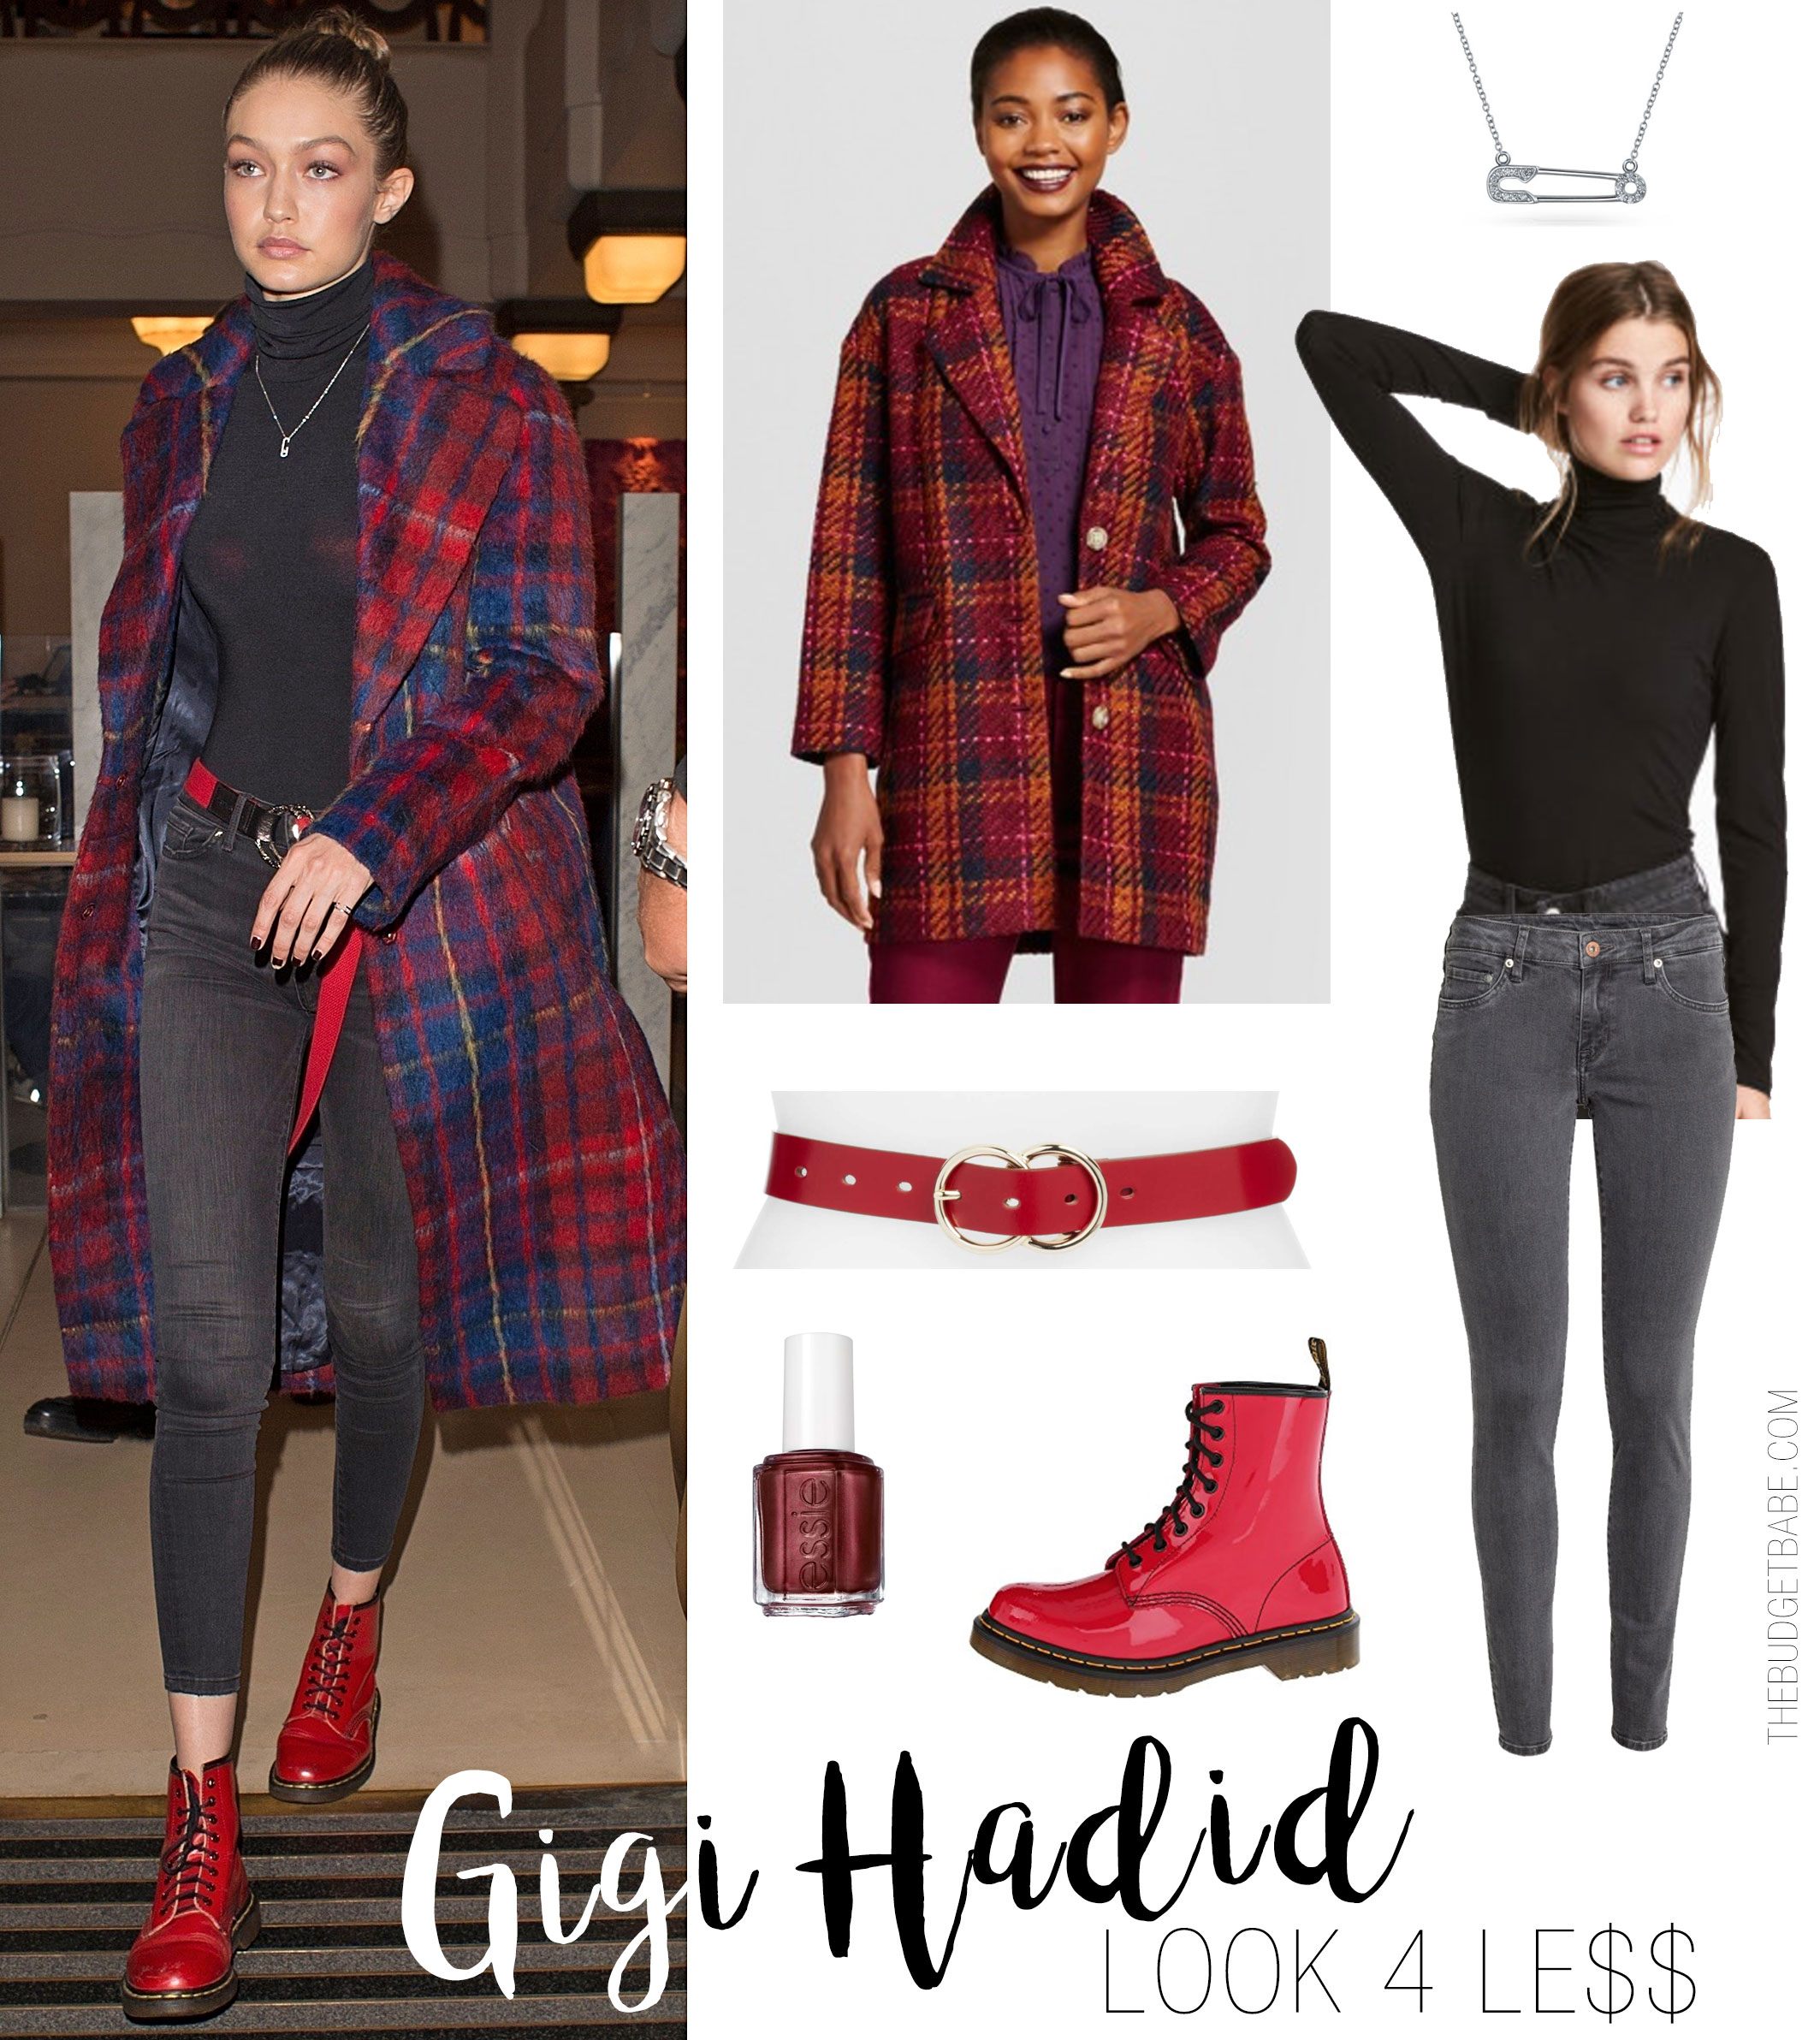 Gigi Hadid steps out in a plaid coat, black turtleneck and red combat boots.